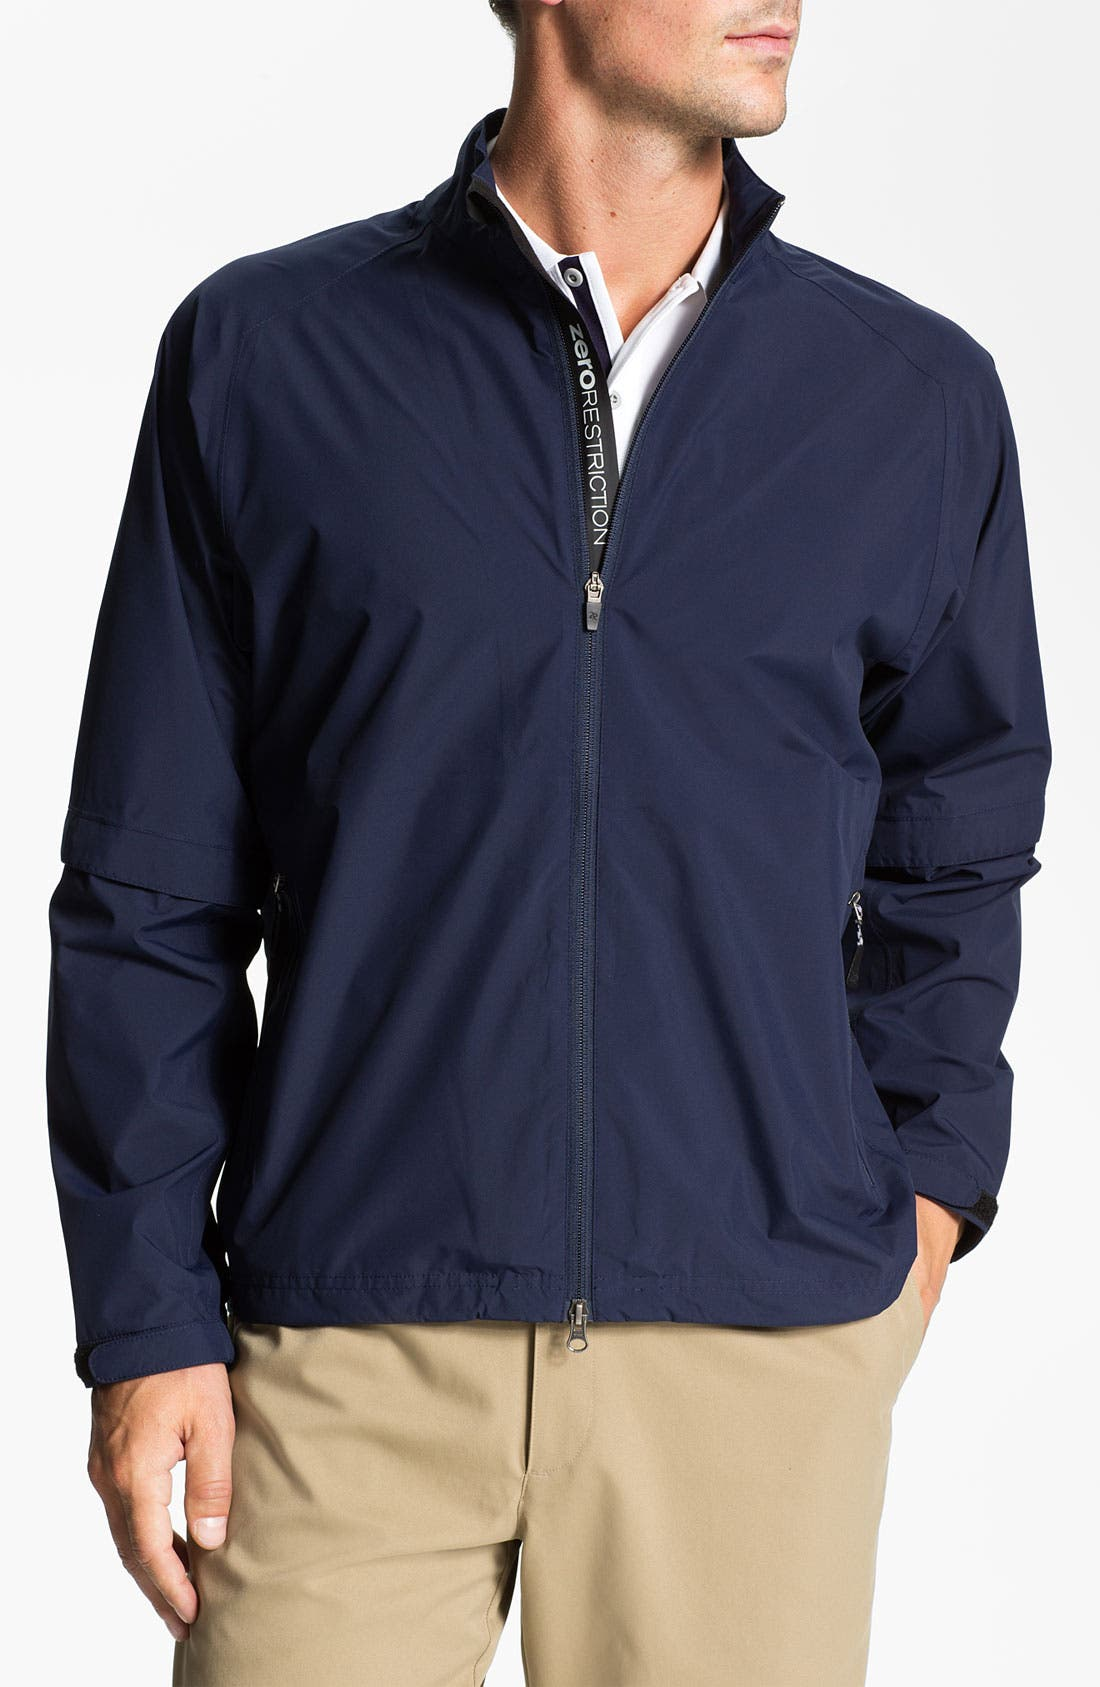 Main Image - Zero Restriction Packable Jacket